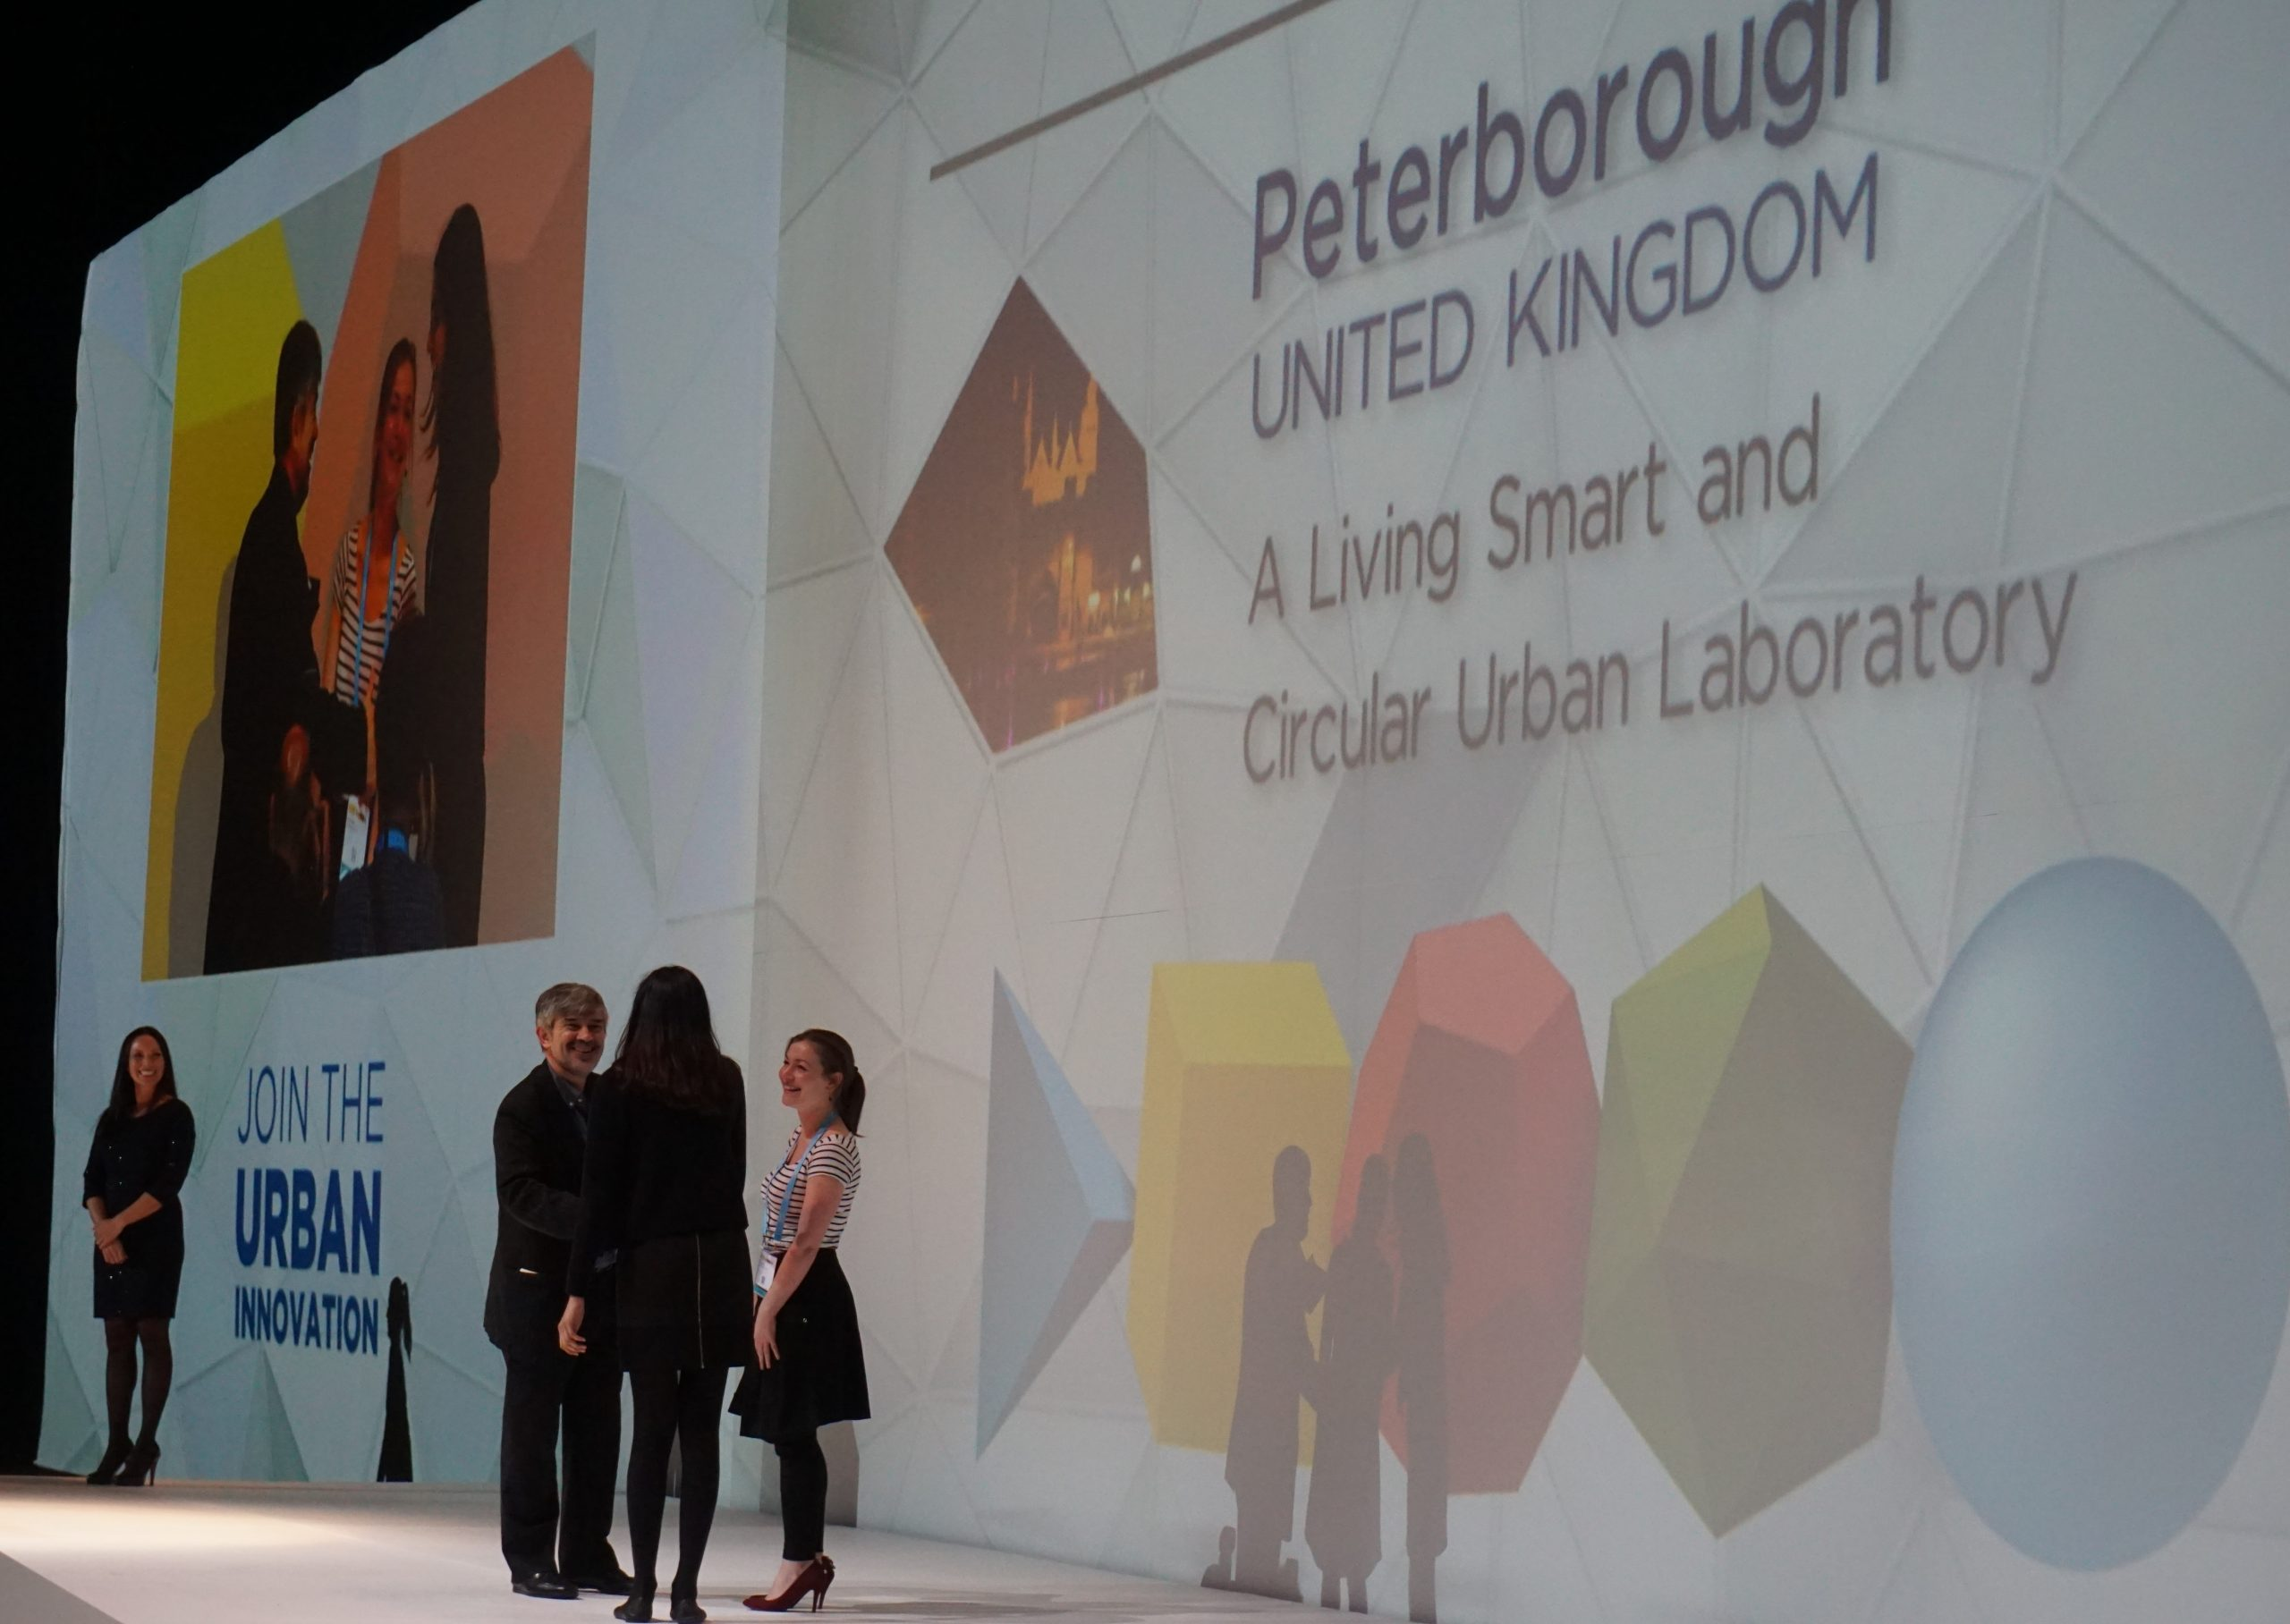 Poppy Rai, Opportunity Peterborough, and Cecile Faraud, Peterborough City Council, accepting Peterborough's Smart City Award 2015